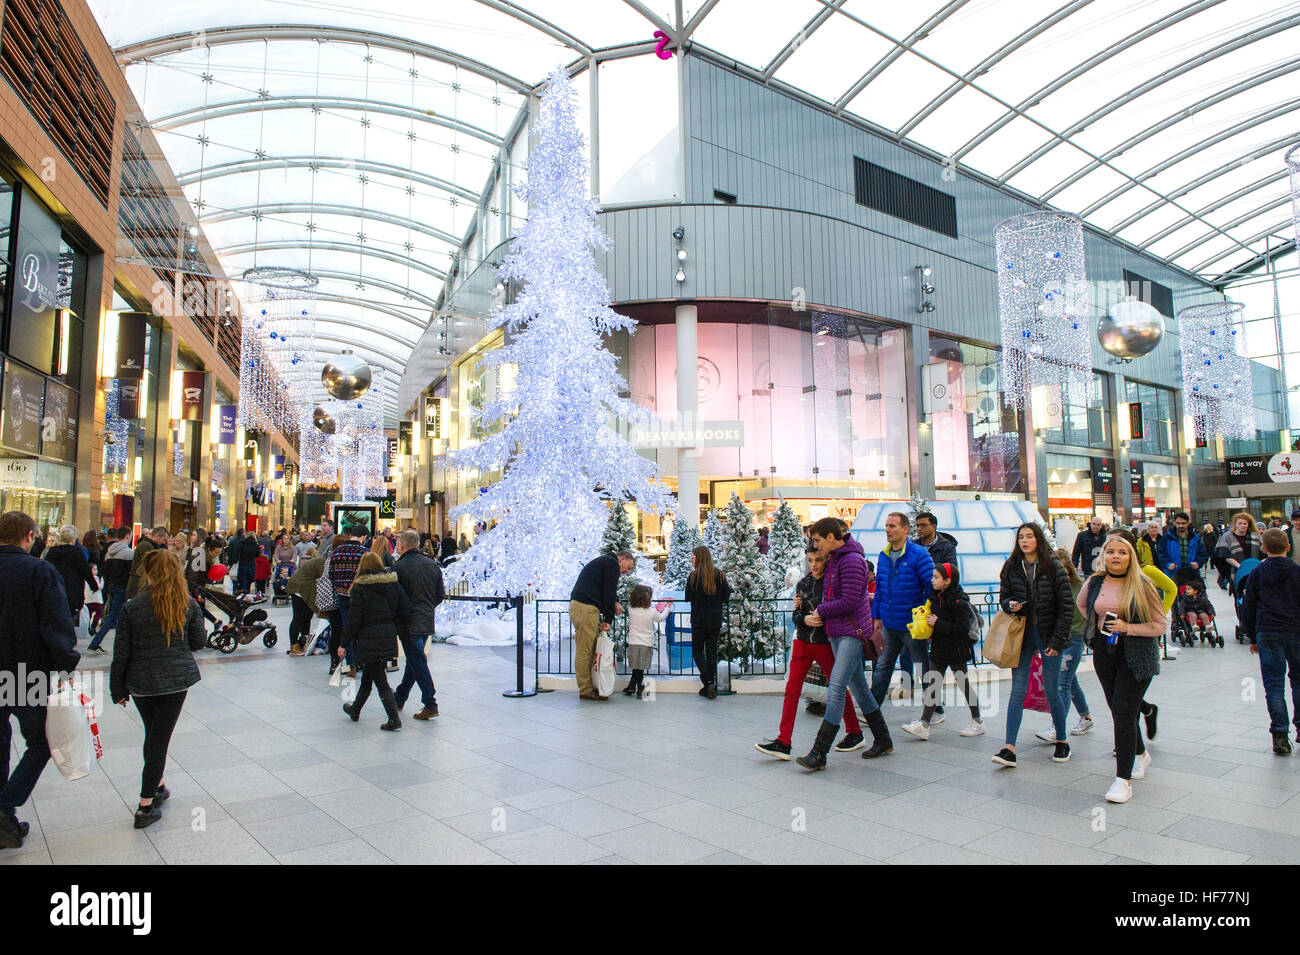 Christmas decorations at the Centre shopping mall, Livingston, West Lothian. Stock Photo